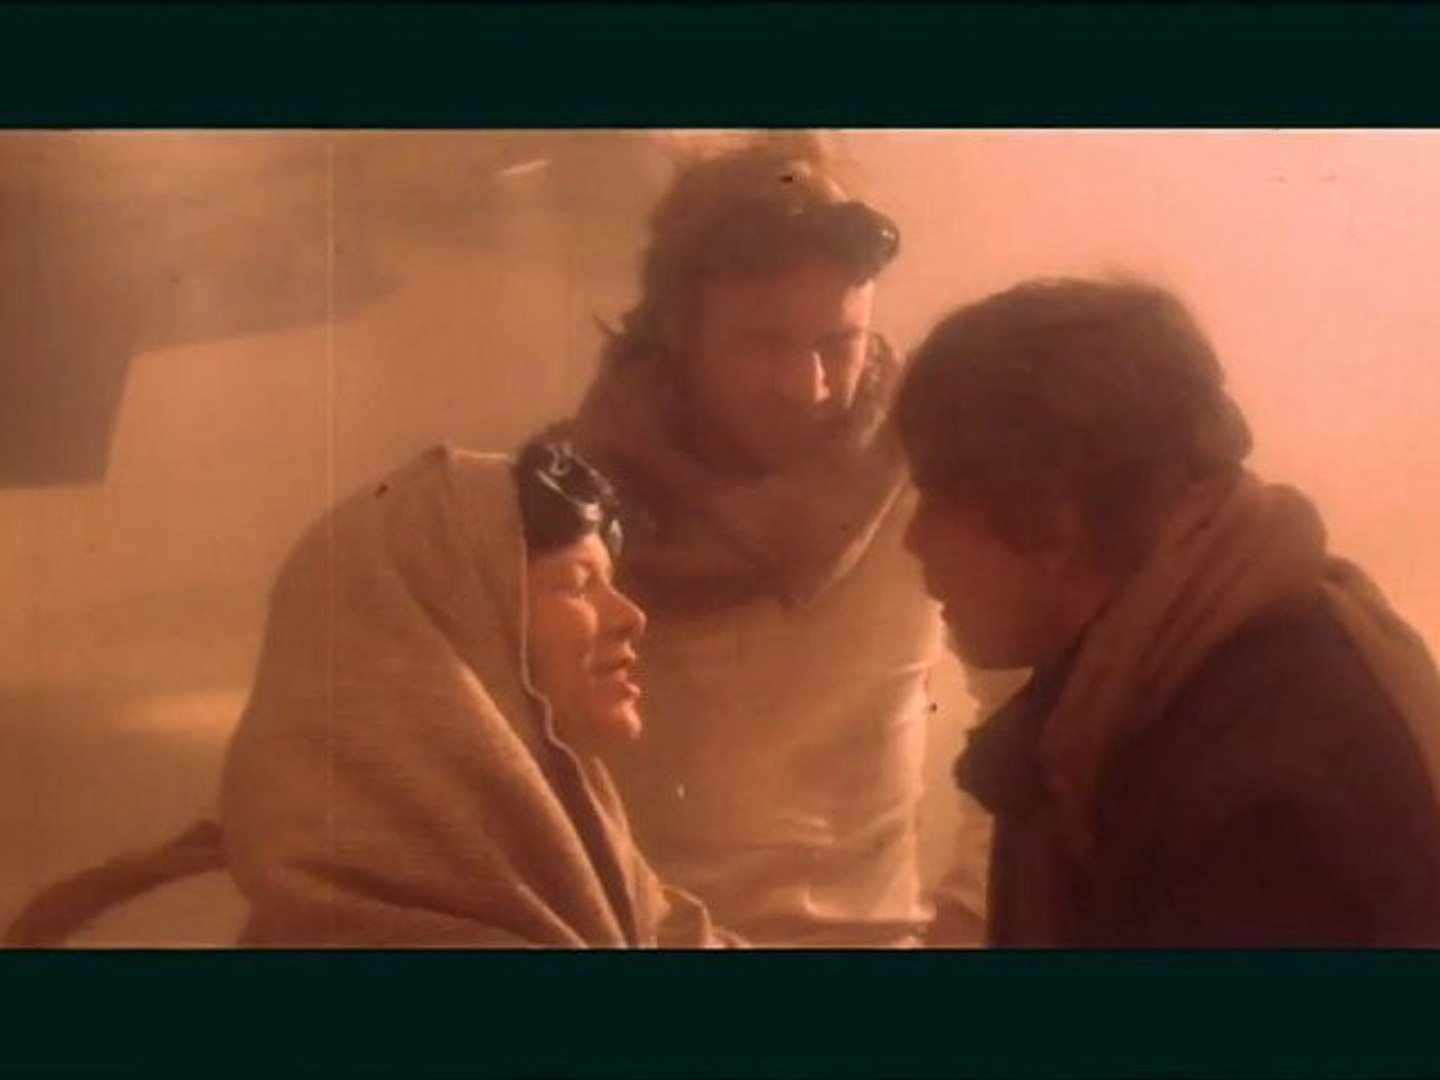 Star Wars Episode Vi Deleted Scenes Tatooine Sandstorm Video Dailymotion